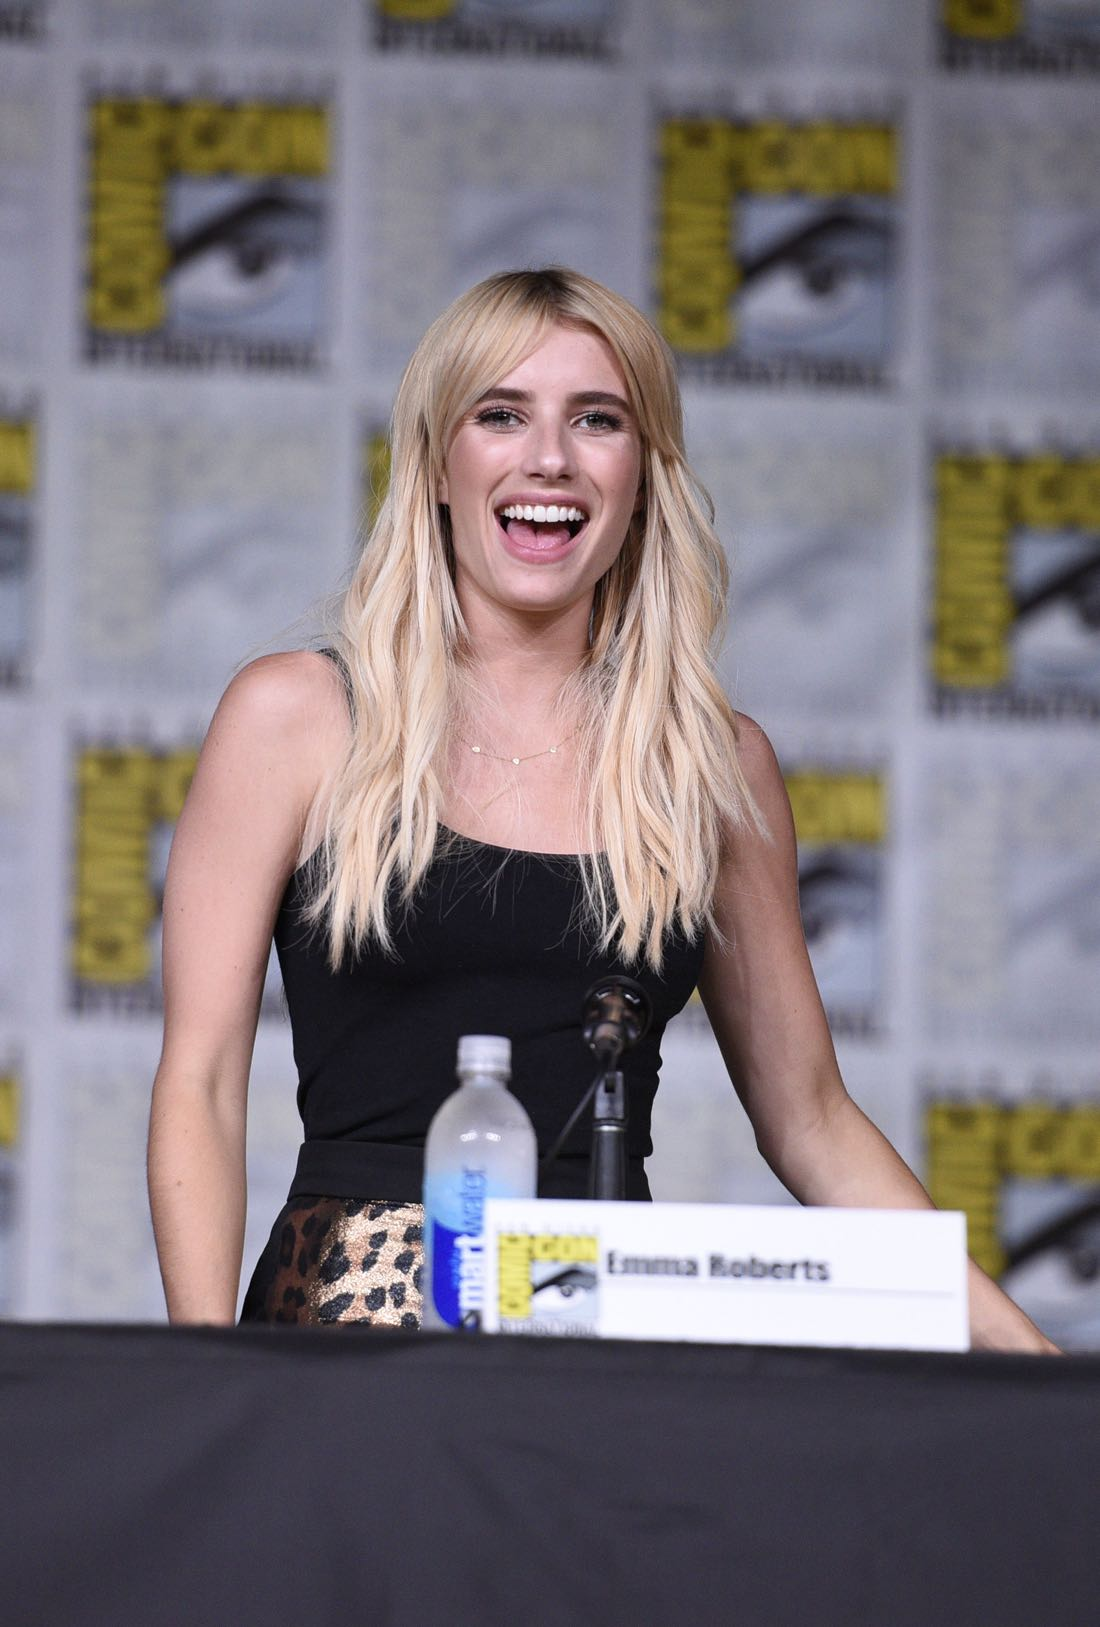 FOX FANFARE AT SAN DIEGO COMIC-CON © 2016: SCREAM QUEENS cast member Emma Roberts during the SCREAM QUEENS panel on Friday, July 22 at the FOX FANFARE AT SAN DIEGO COMIC-CON © 2016. CR: Alan Hess/FOX © 2016 FOX BROADCASTING